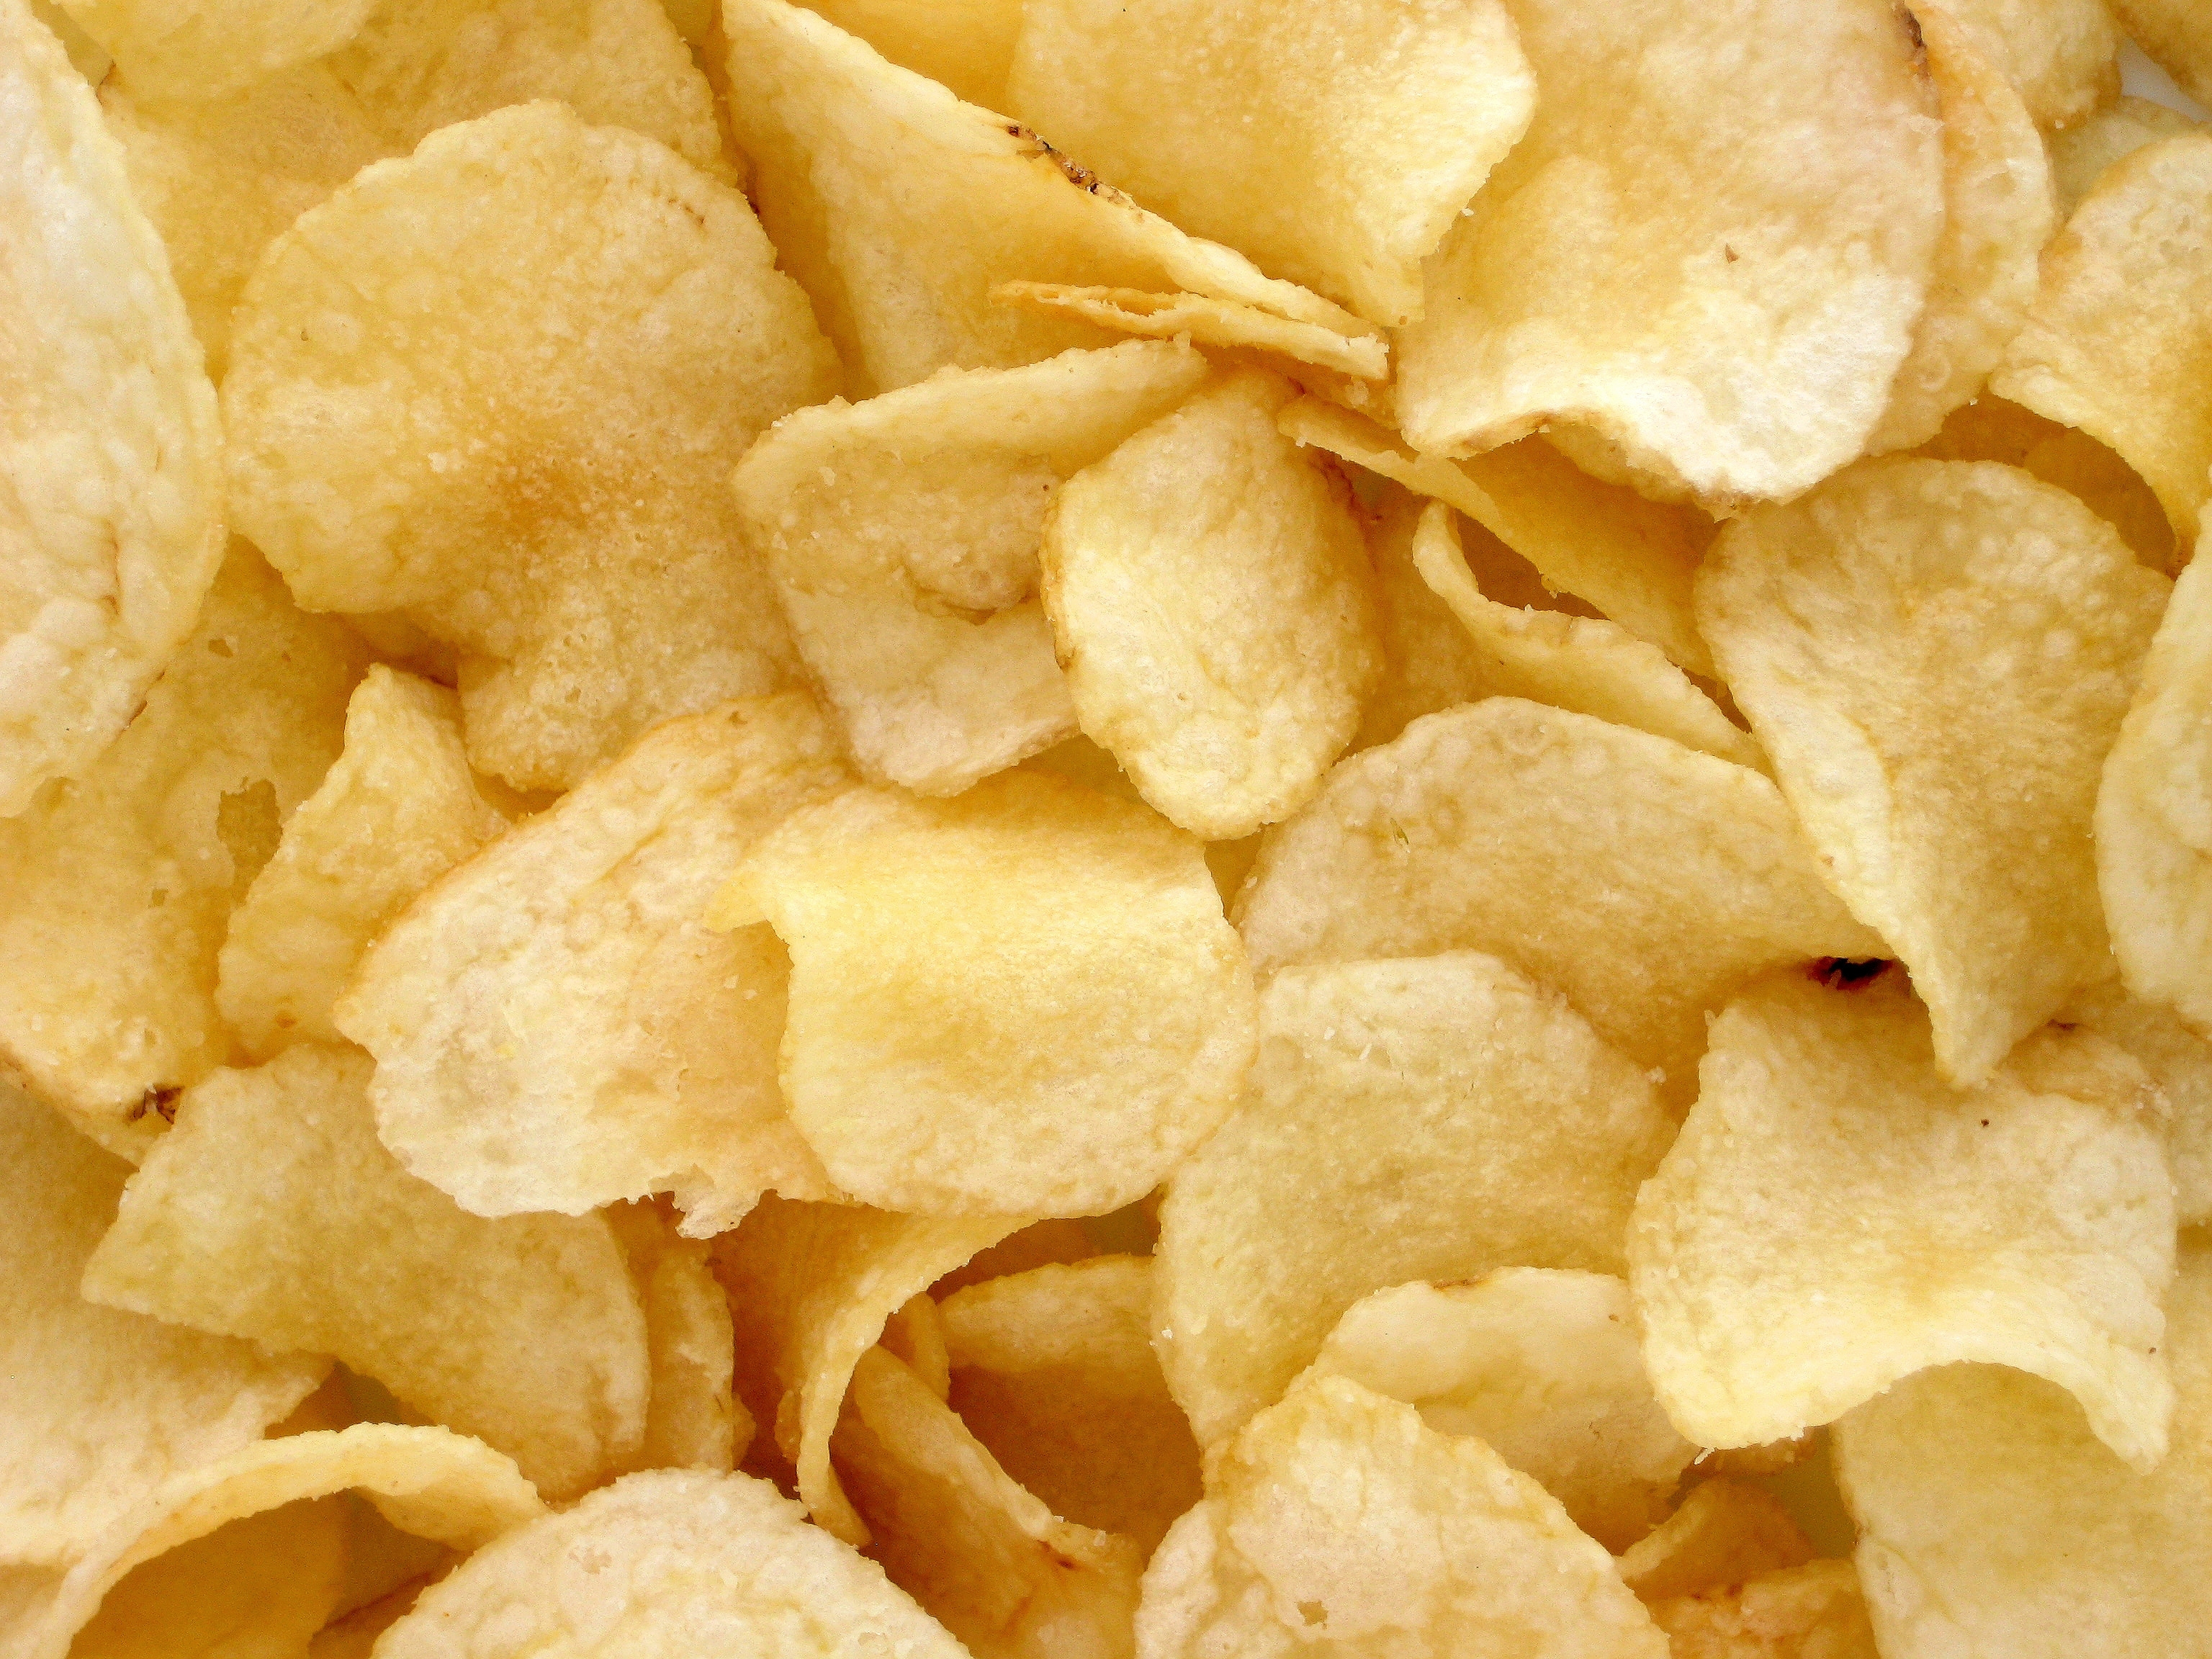 All these Crisps